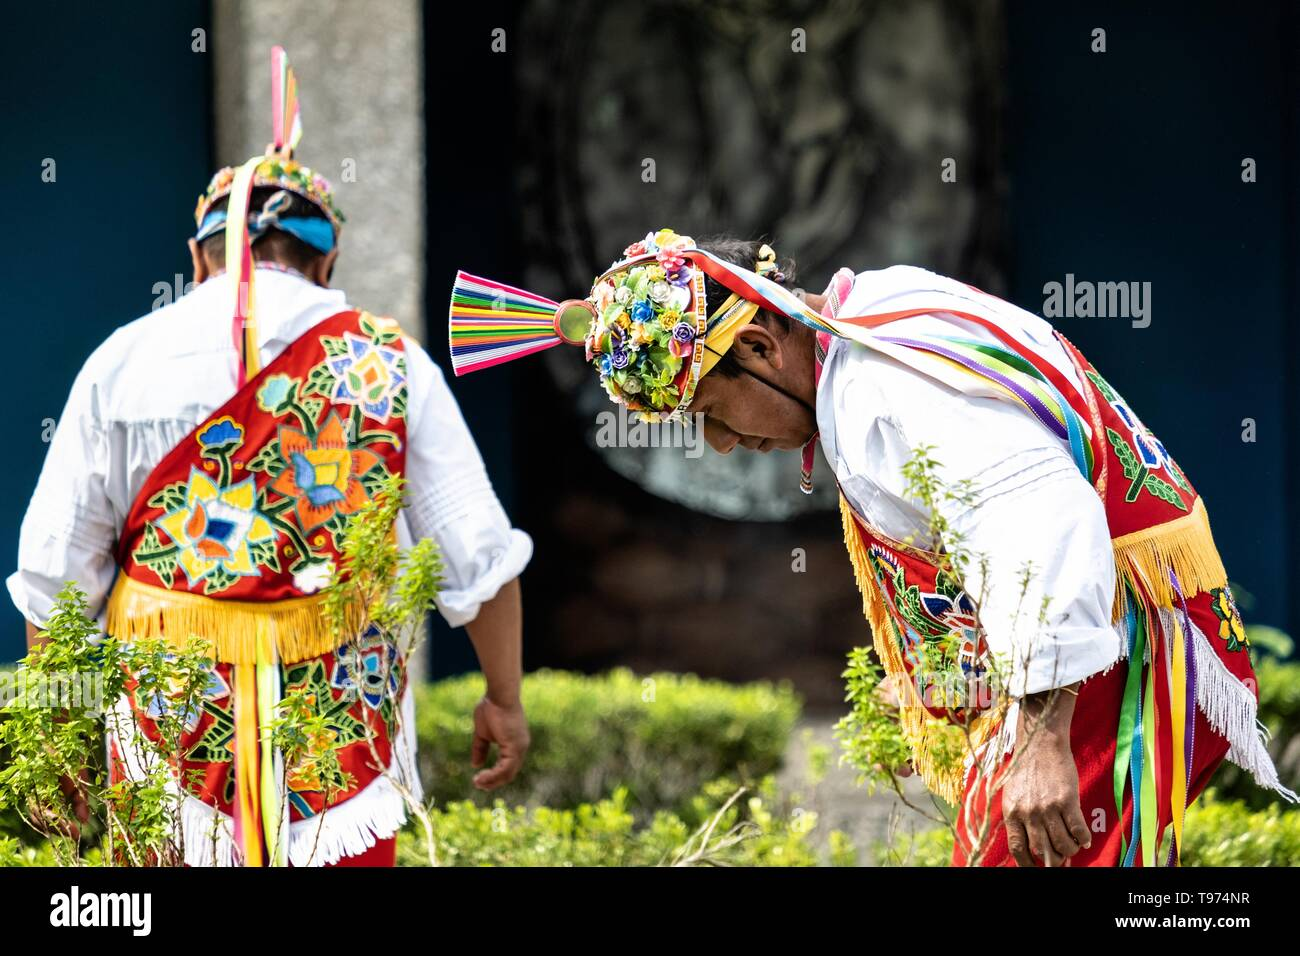 Voladores perform the sacred ritual before climbing a pole for the ceremonial dance in the Parque Takilhsukut at the pre-Columbian archeological complex of El Tajin in Tajin, Veracruz, Mexico. The Danza de los Voladores is a indigenous Totonac ceremony involving five participants who climb a thirty-meter pole. Four of these tie ropes around their waists and wind the other end around the top of the pole in order to descend to the ground. The fifth participant stays at the top of the pole, playing a flute and a small drum. The ceremony has been inscribed as a Masterpiece of the Oral and Intangib - Stock Image